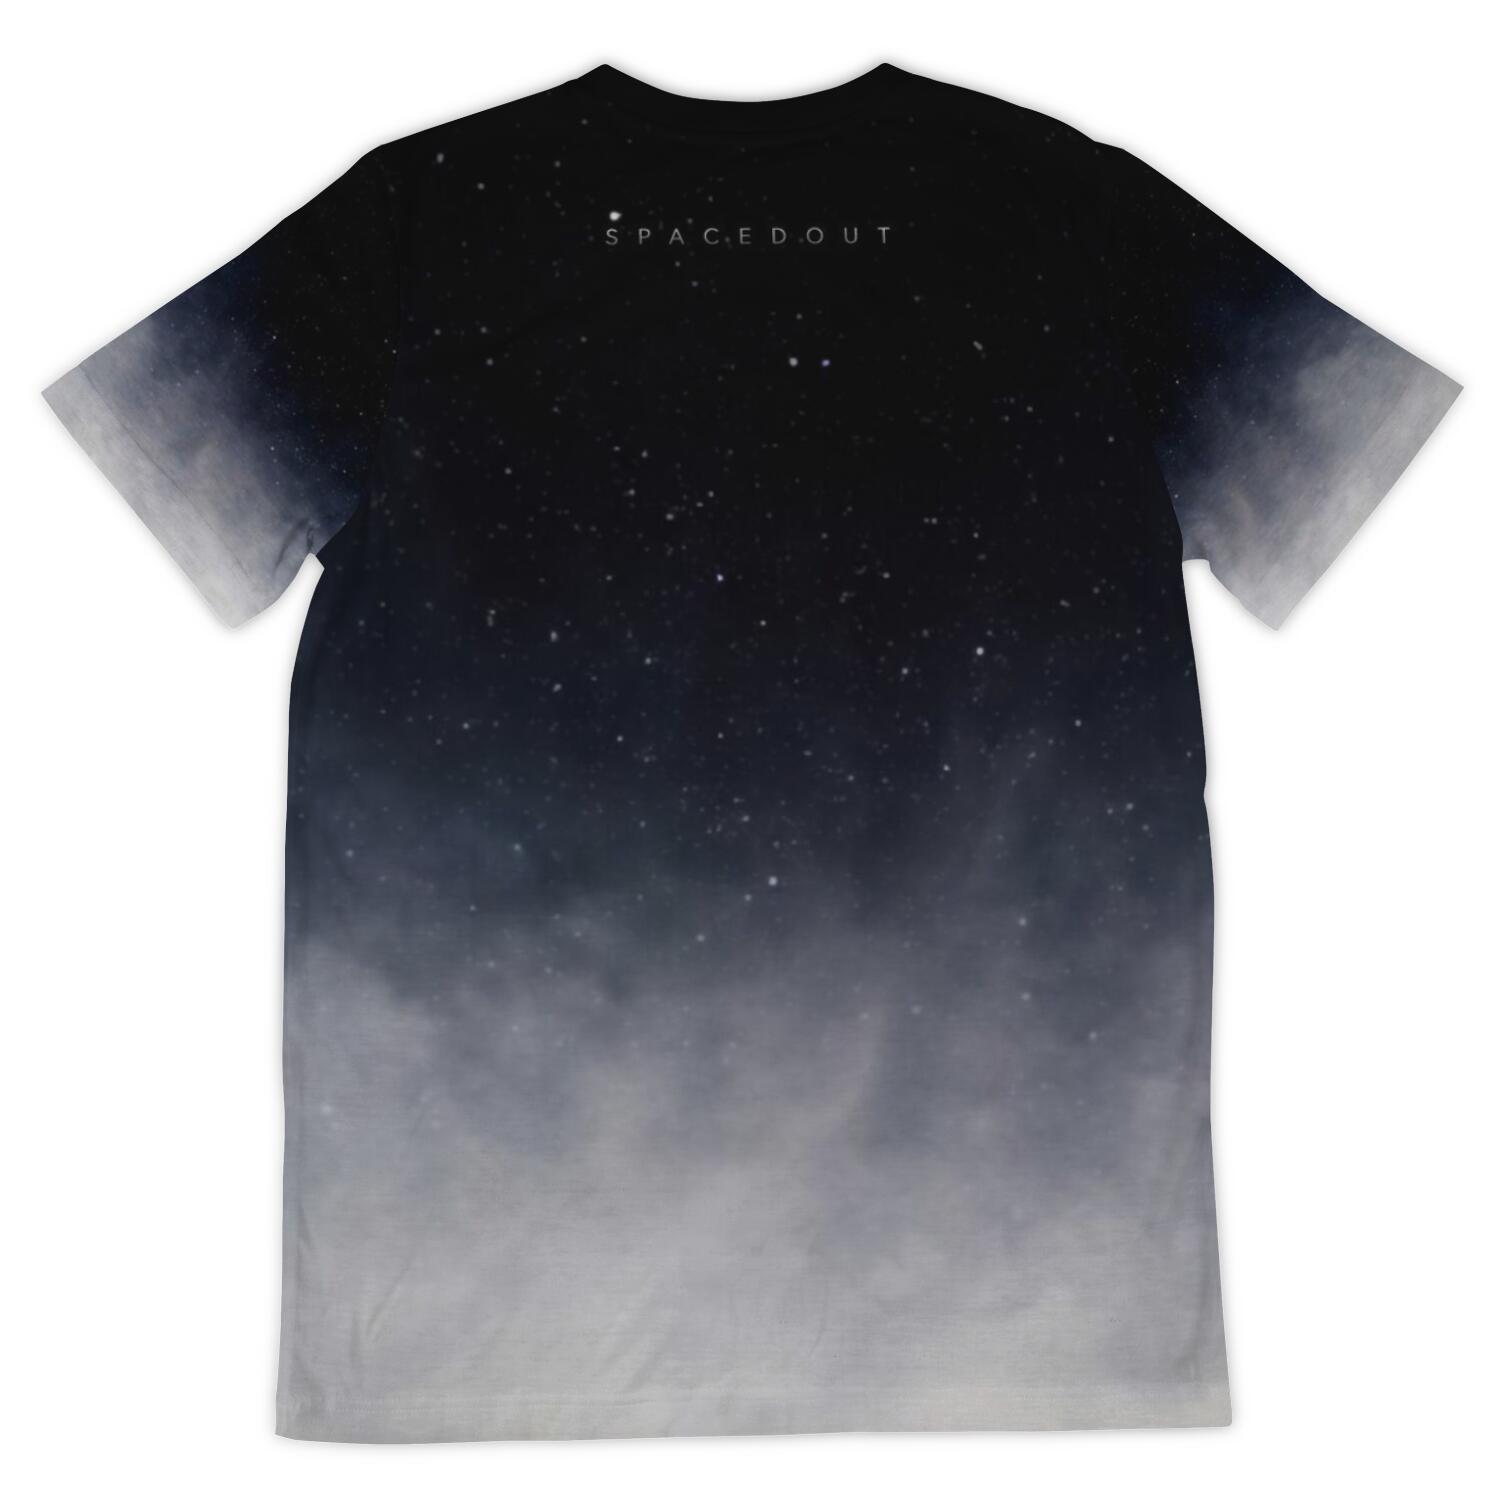 Spaced Out Unisex Tee